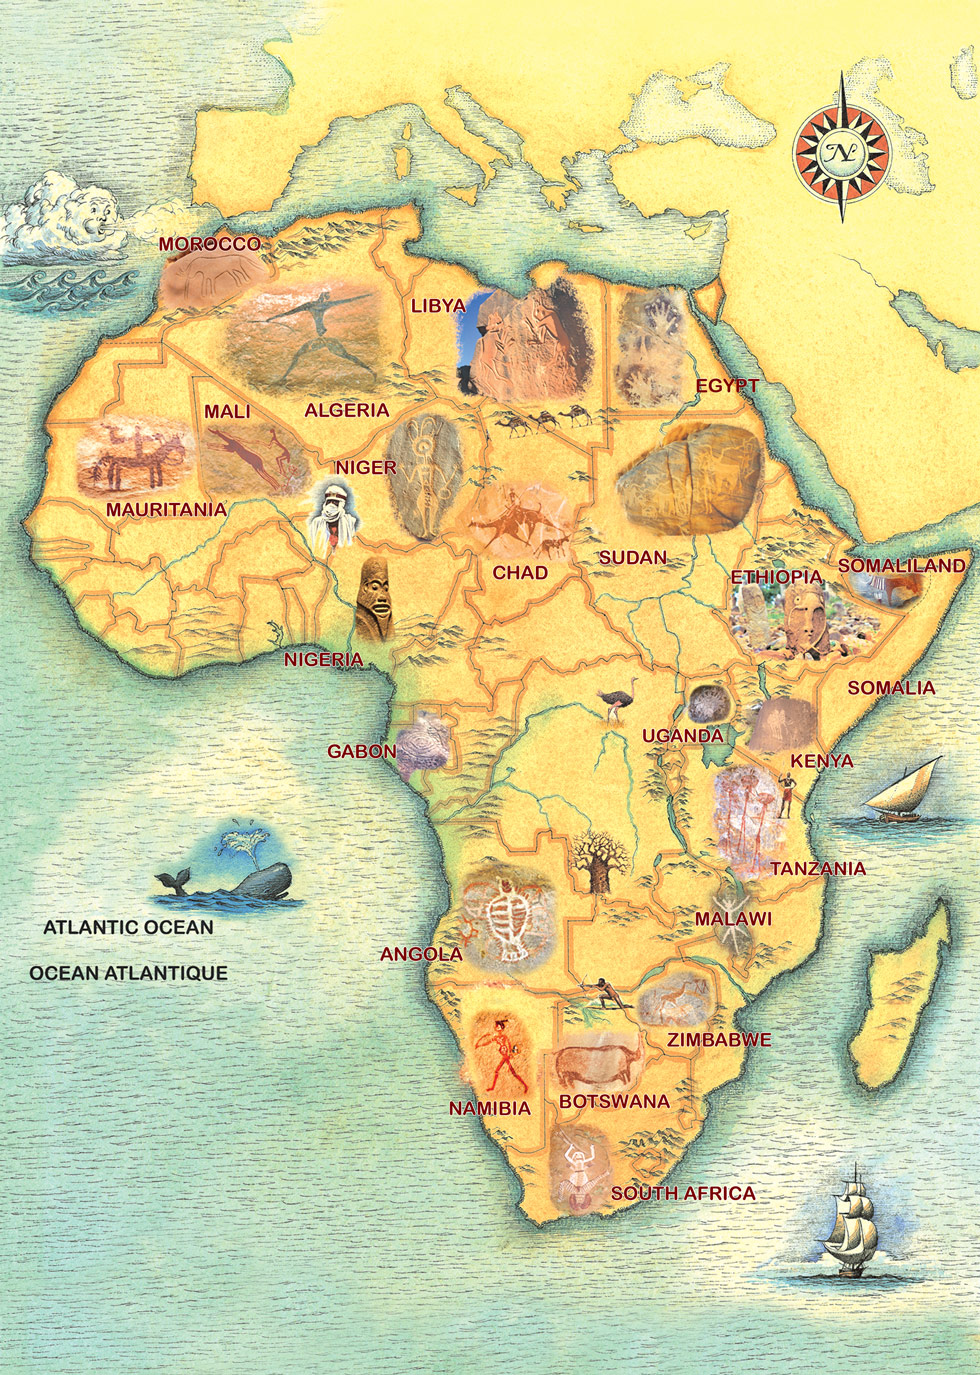 Rock Art In Africa Map Of Ancient Africa on geographical map of africa, current map of africa, blank map of africa, map of the founding of rome, map of africa with countries, climate map of africa, map of medieval africa, map of identity, map of contemporary africa, big map of africa, map of north america, map of cush, map of italian africa, map of norway africa, map of mesopotamia, map of china, map of middle east, map of east africa, map of earth africa, map of historical africa,